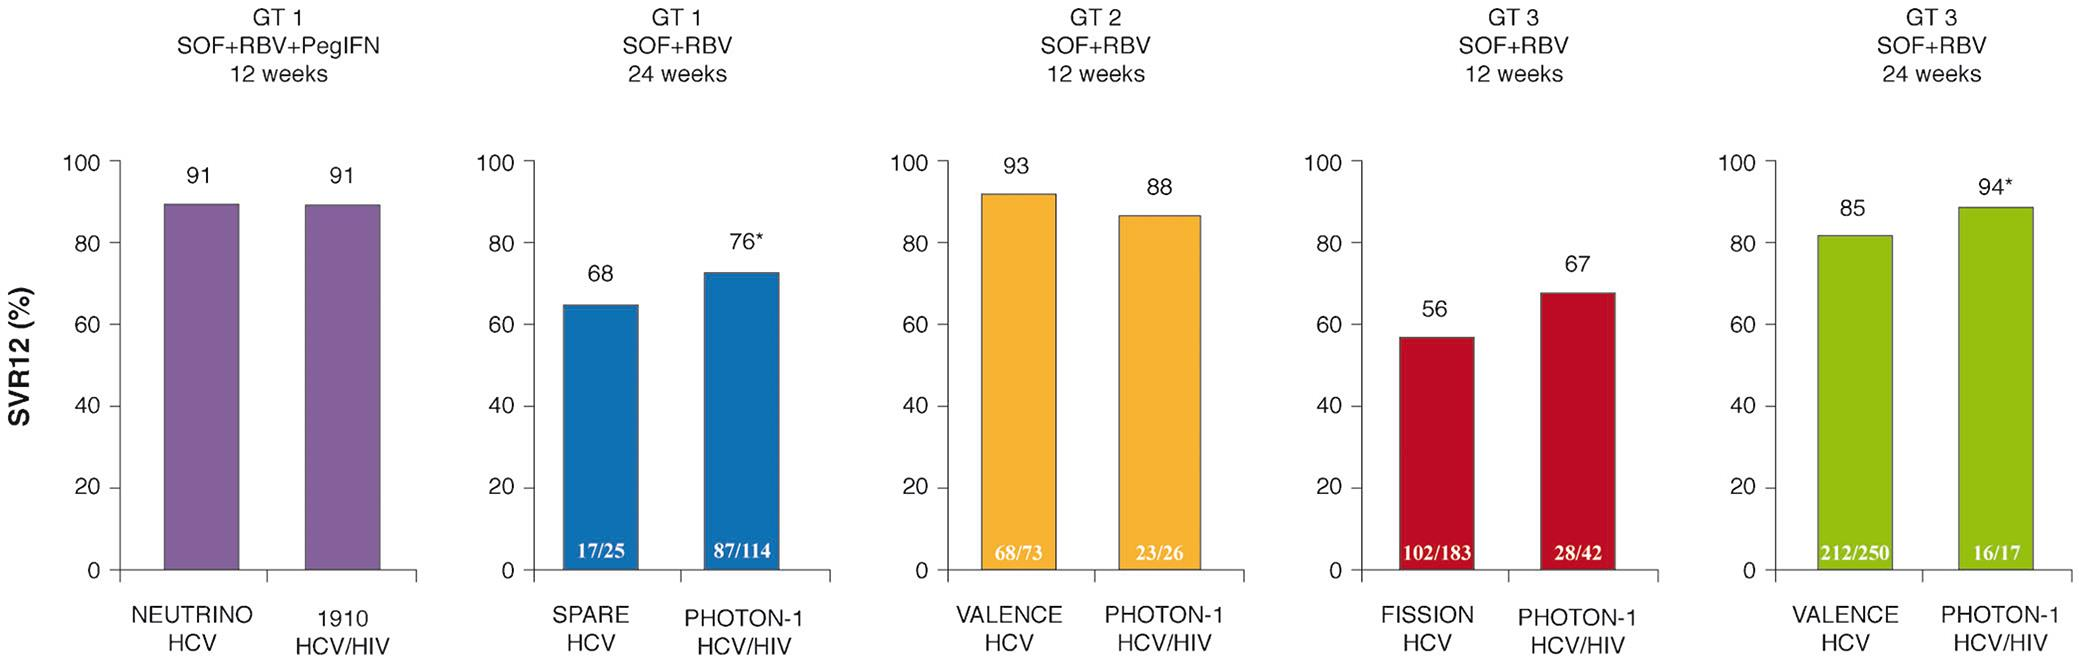 SVR12 in HCV mono-infected and HCV/HIV co-infected sofosbuvir (SOF) + RBV ± PegIFN x 12 or 24 weeks. Similar response rates in HCV/HIV co-infected patients compared to HCV mono-infected patients.